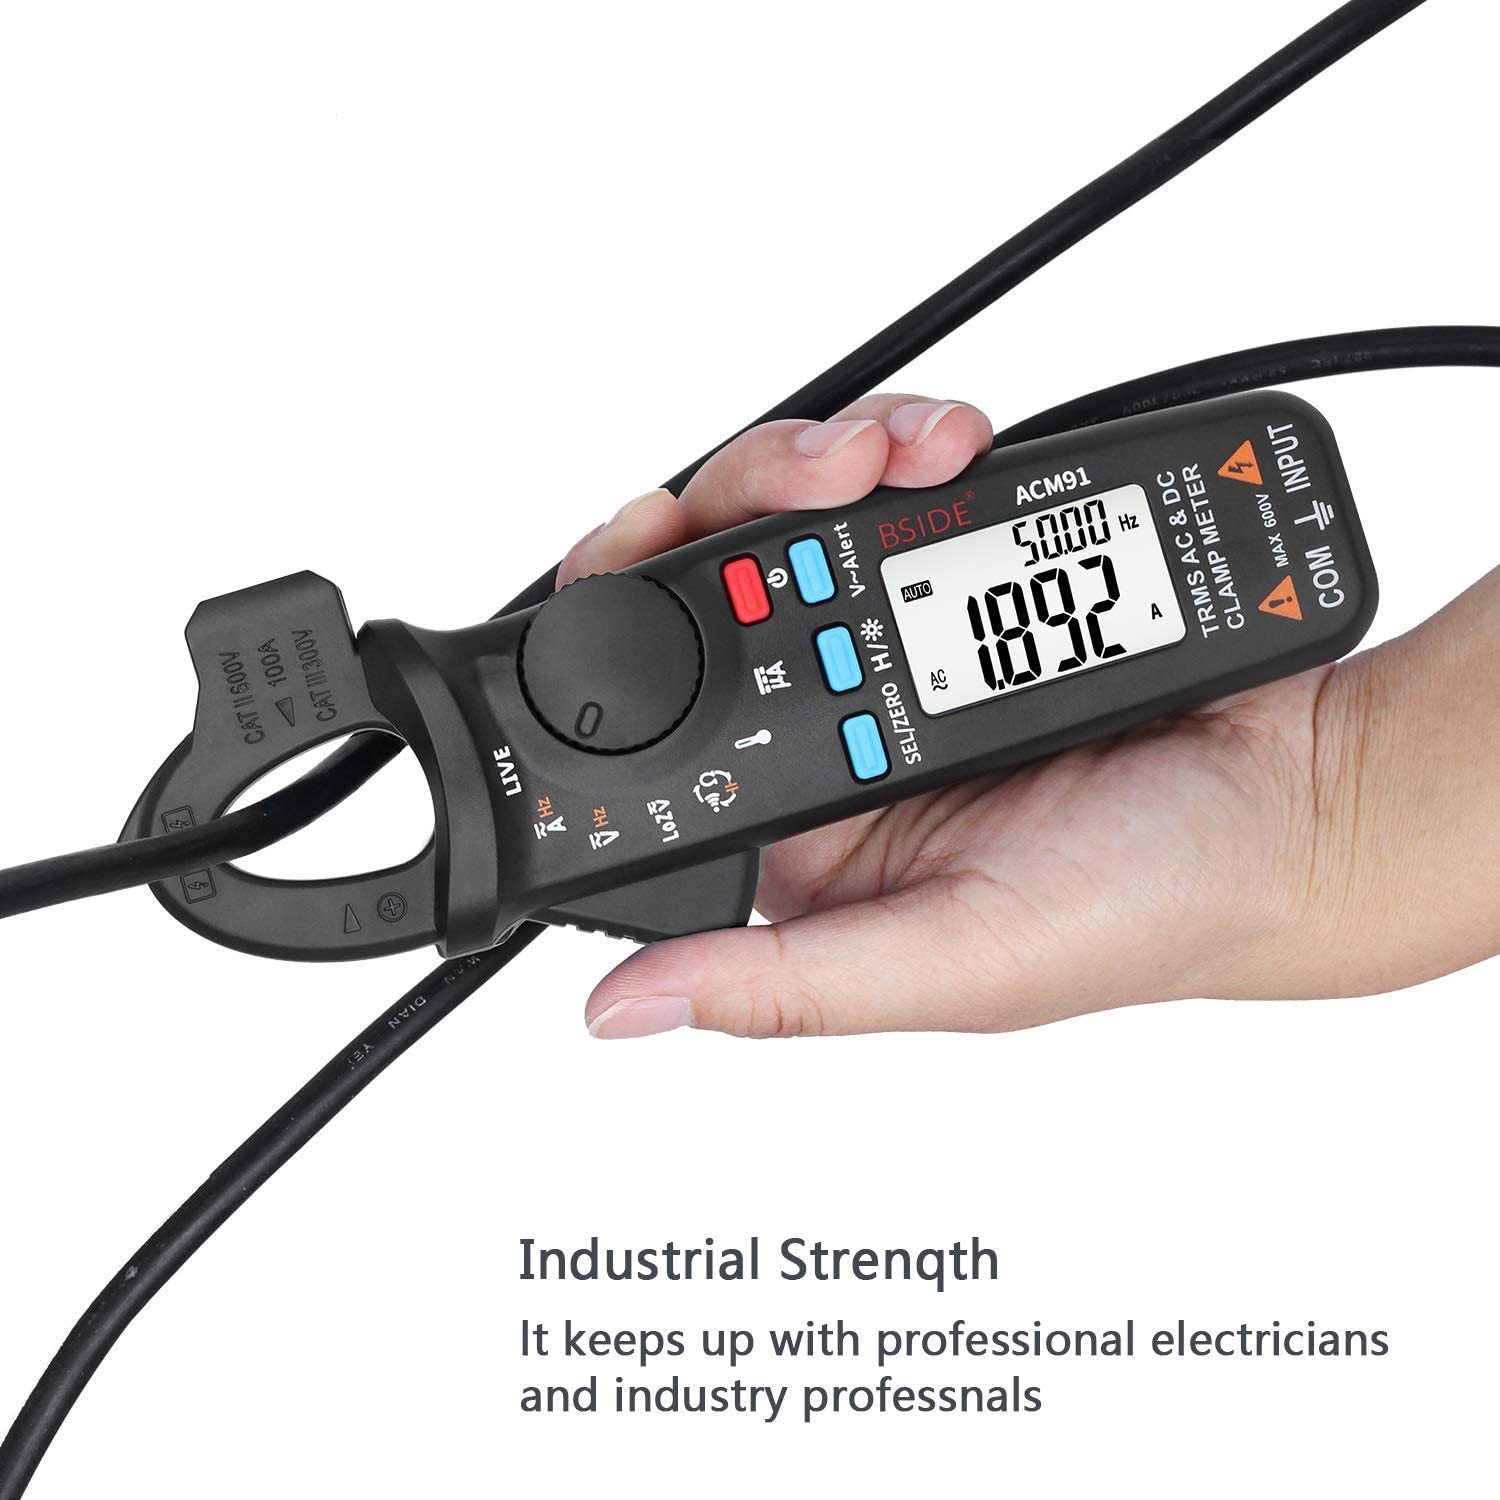 ZGQA-GQA Clamp Meter AC//DC Current TRMS Auto-Ranging 6000 Counts Capacitance Live Check V-Alert Tester with Pocket Clip ACM91